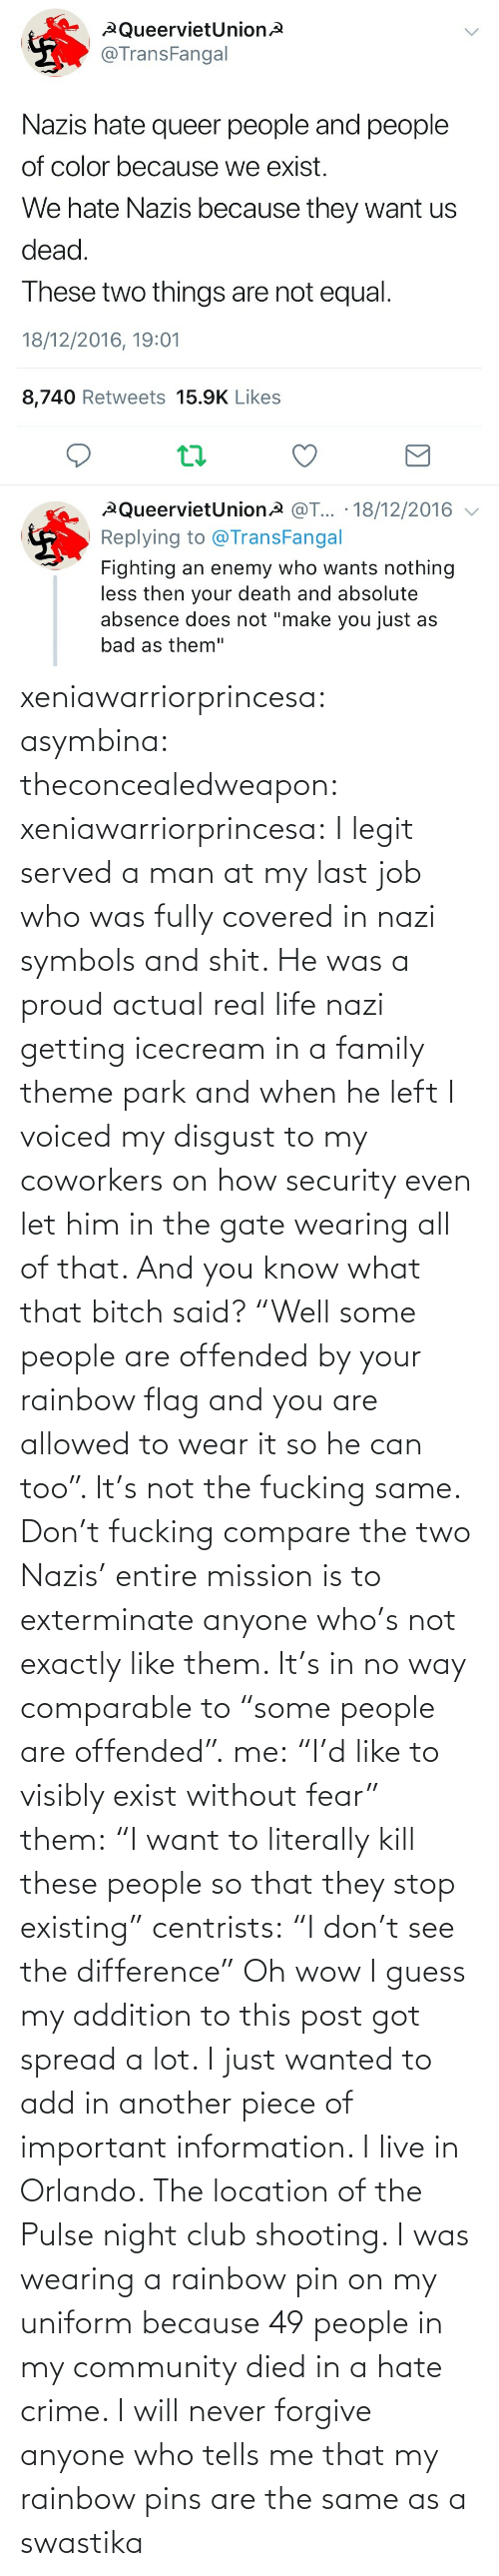 "I Will: xeniawarriorprincesa:  asymbina:  theconcealedweapon:  xeniawarriorprincesa:  I legit served a man at my last job who was fully covered in nazi symbols and shit. He was a proud actual real life nazi getting icecream in a family theme park and when he left I voiced my disgust to my coworkers on how security even let him in the gate wearing all of that. And you know what that bitch said? ""Well some people are offended by your rainbow flag and you are allowed to wear it so he can too"". It's not the fucking same. Don't fucking compare the two  Nazis' entire mission is to exterminate anyone who's not exactly like them. It's in no way comparable to ""some people are offended"".  me: ""I'd like to visibly exist without fear"" them: ""I want to literally kill these people so that they stop existing"" centrists: ""I don't see the difference""   Oh wow I guess my addition to this post got spread a lot. I just wanted to add in another piece of important information. I live in Orlando. The location of the Pulse night club shooting. I was wearing a rainbow pin on my uniform because 49 people in my community died in a hate crime. I will never forgive anyone who tells me that my rainbow pins are the same as a swastika"